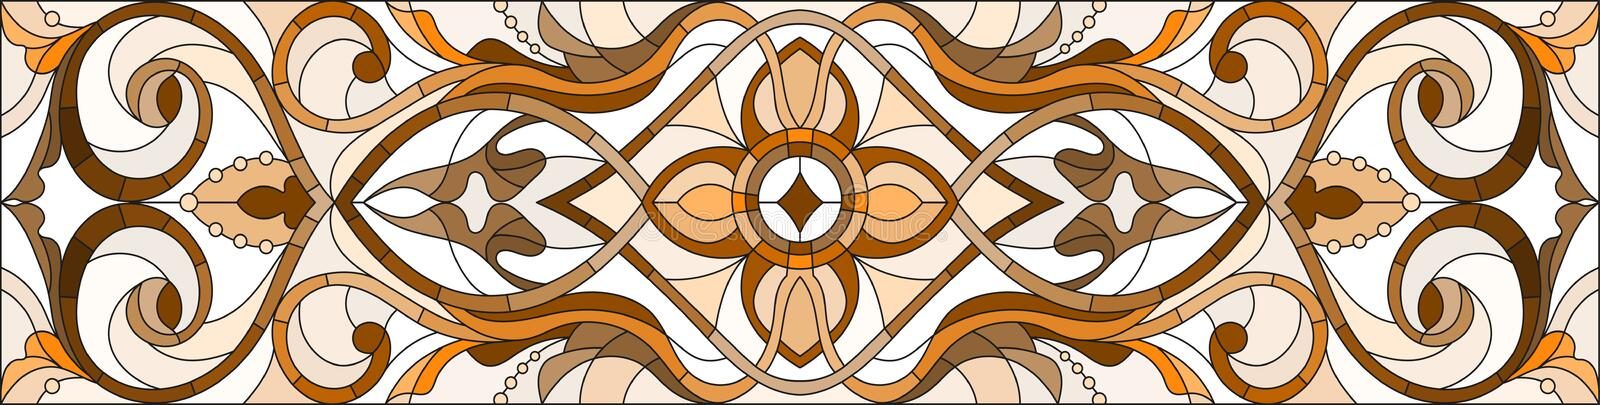 Stained glass illustration with abstract swirls and leaves on a light background,horizontal orientation, sepia stock illustration